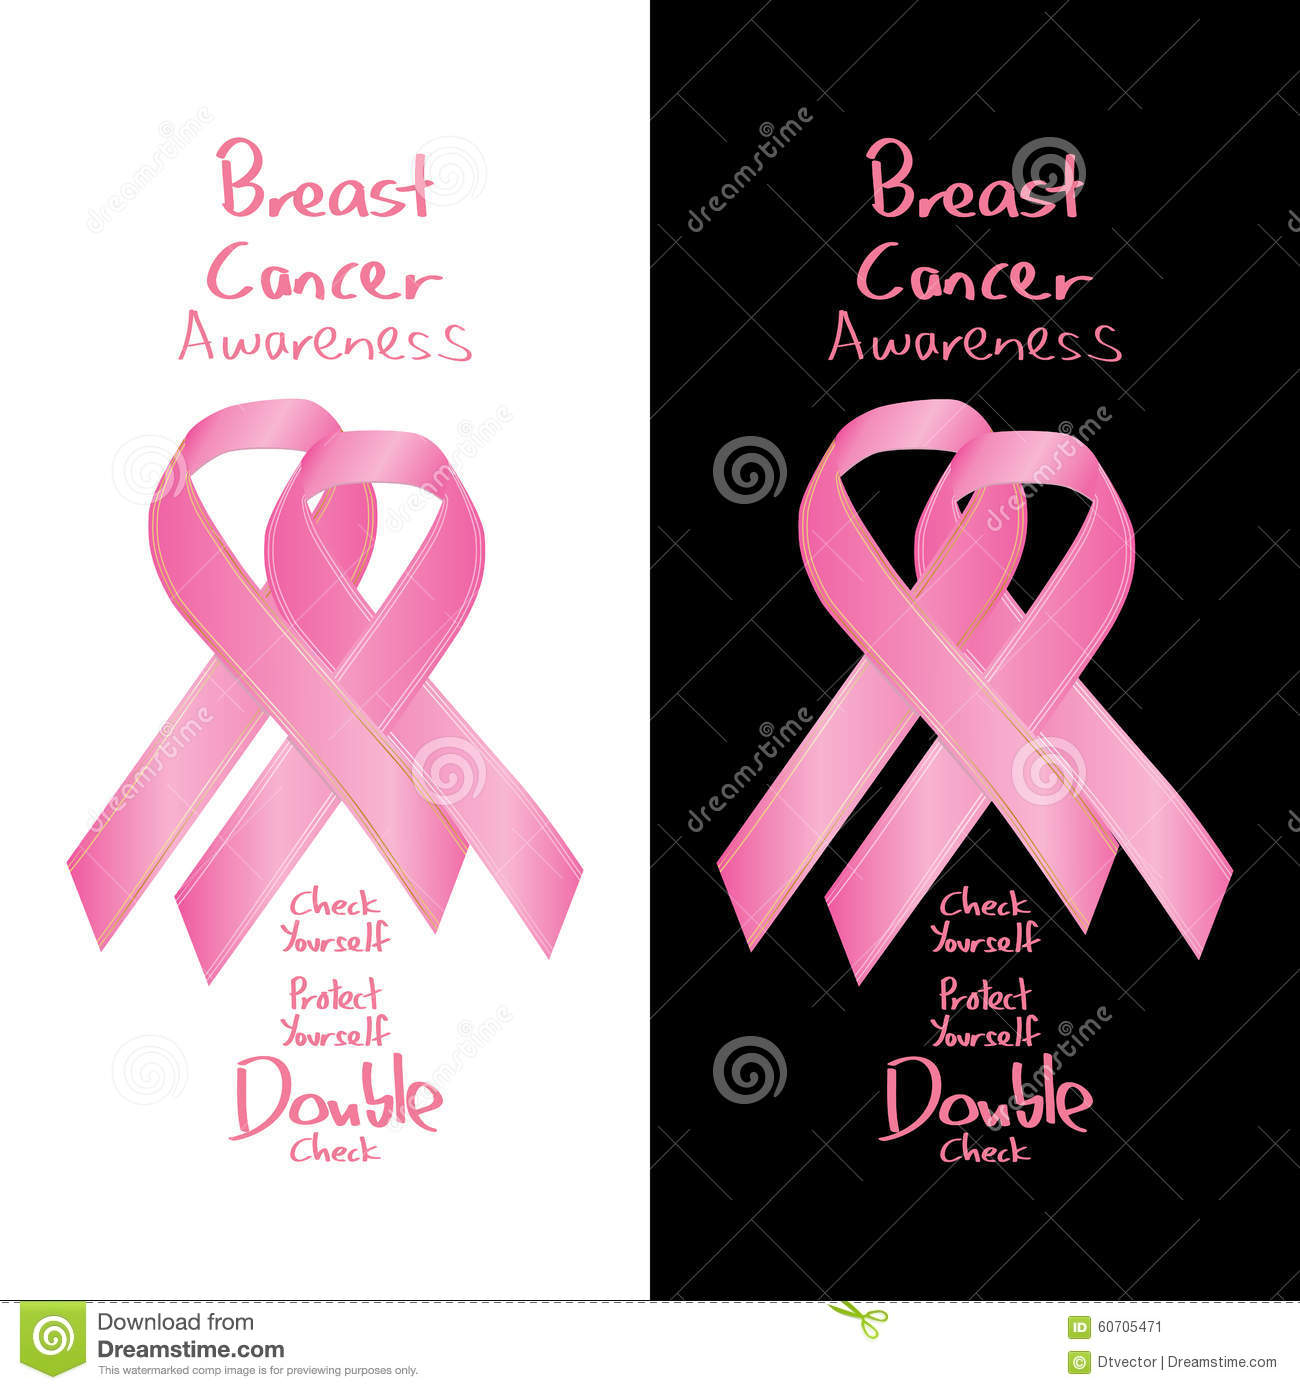 Breast cancer awareness check